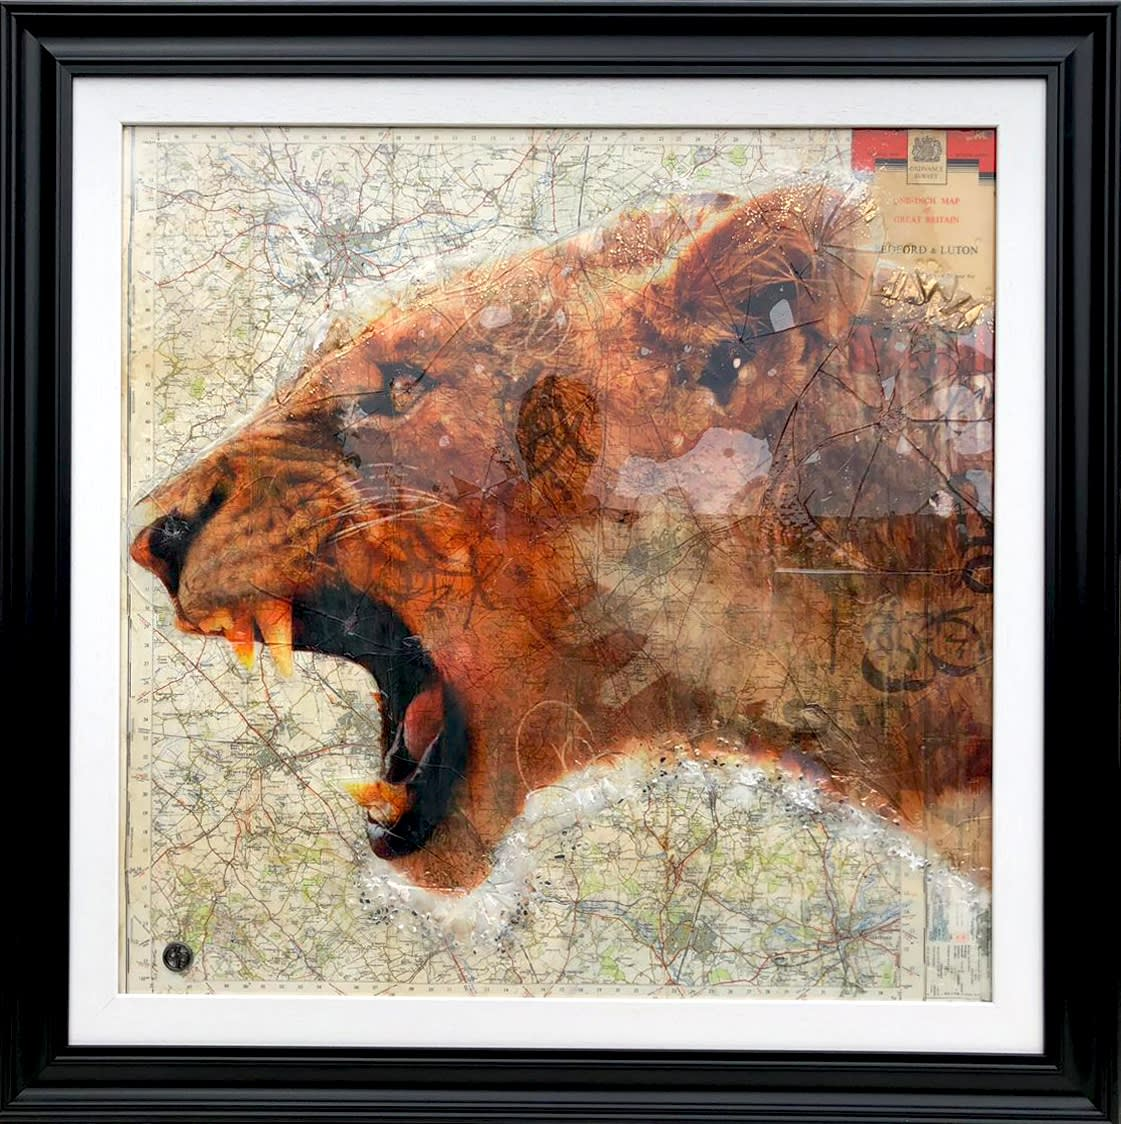 "Dan Pearce Title: Lion Herts Size: 29"" x 29"" Price: £1,850 (Framed)"